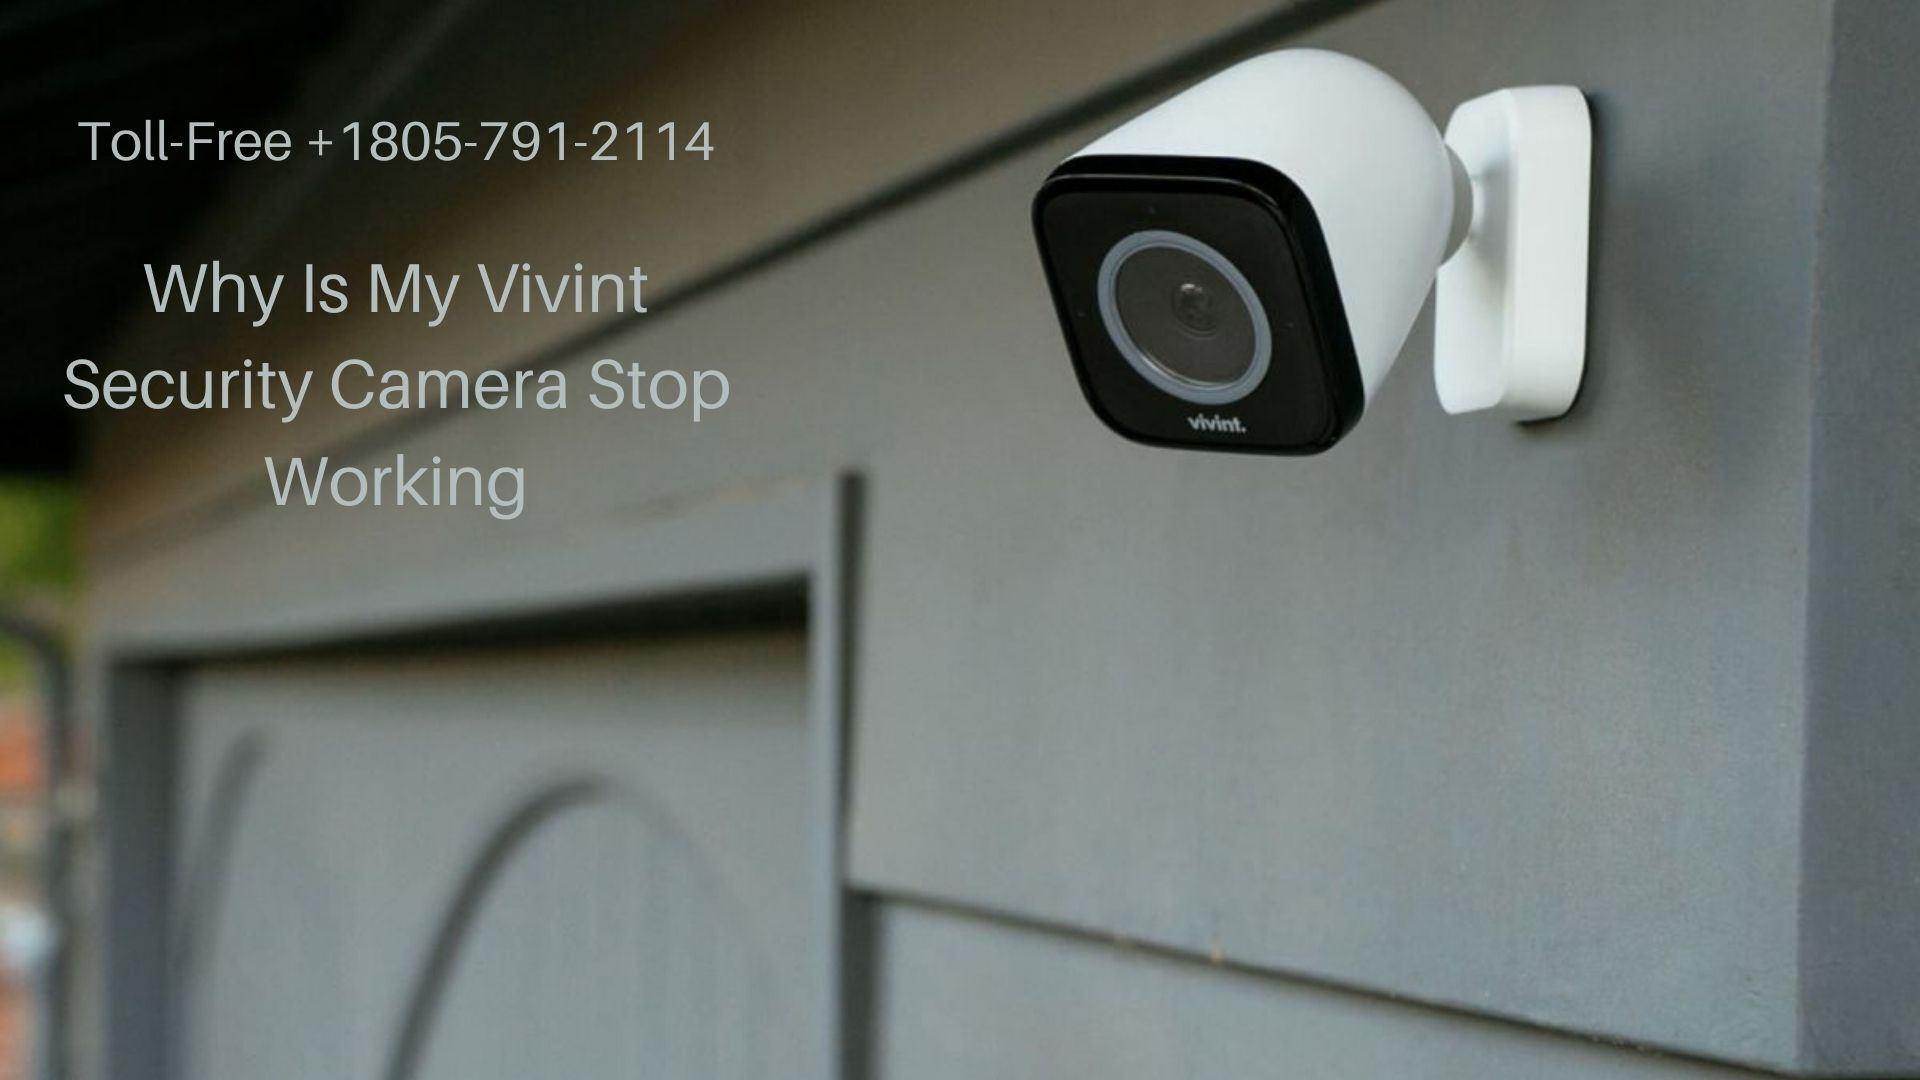 Why Is My Vivint Security Camera Stop Working